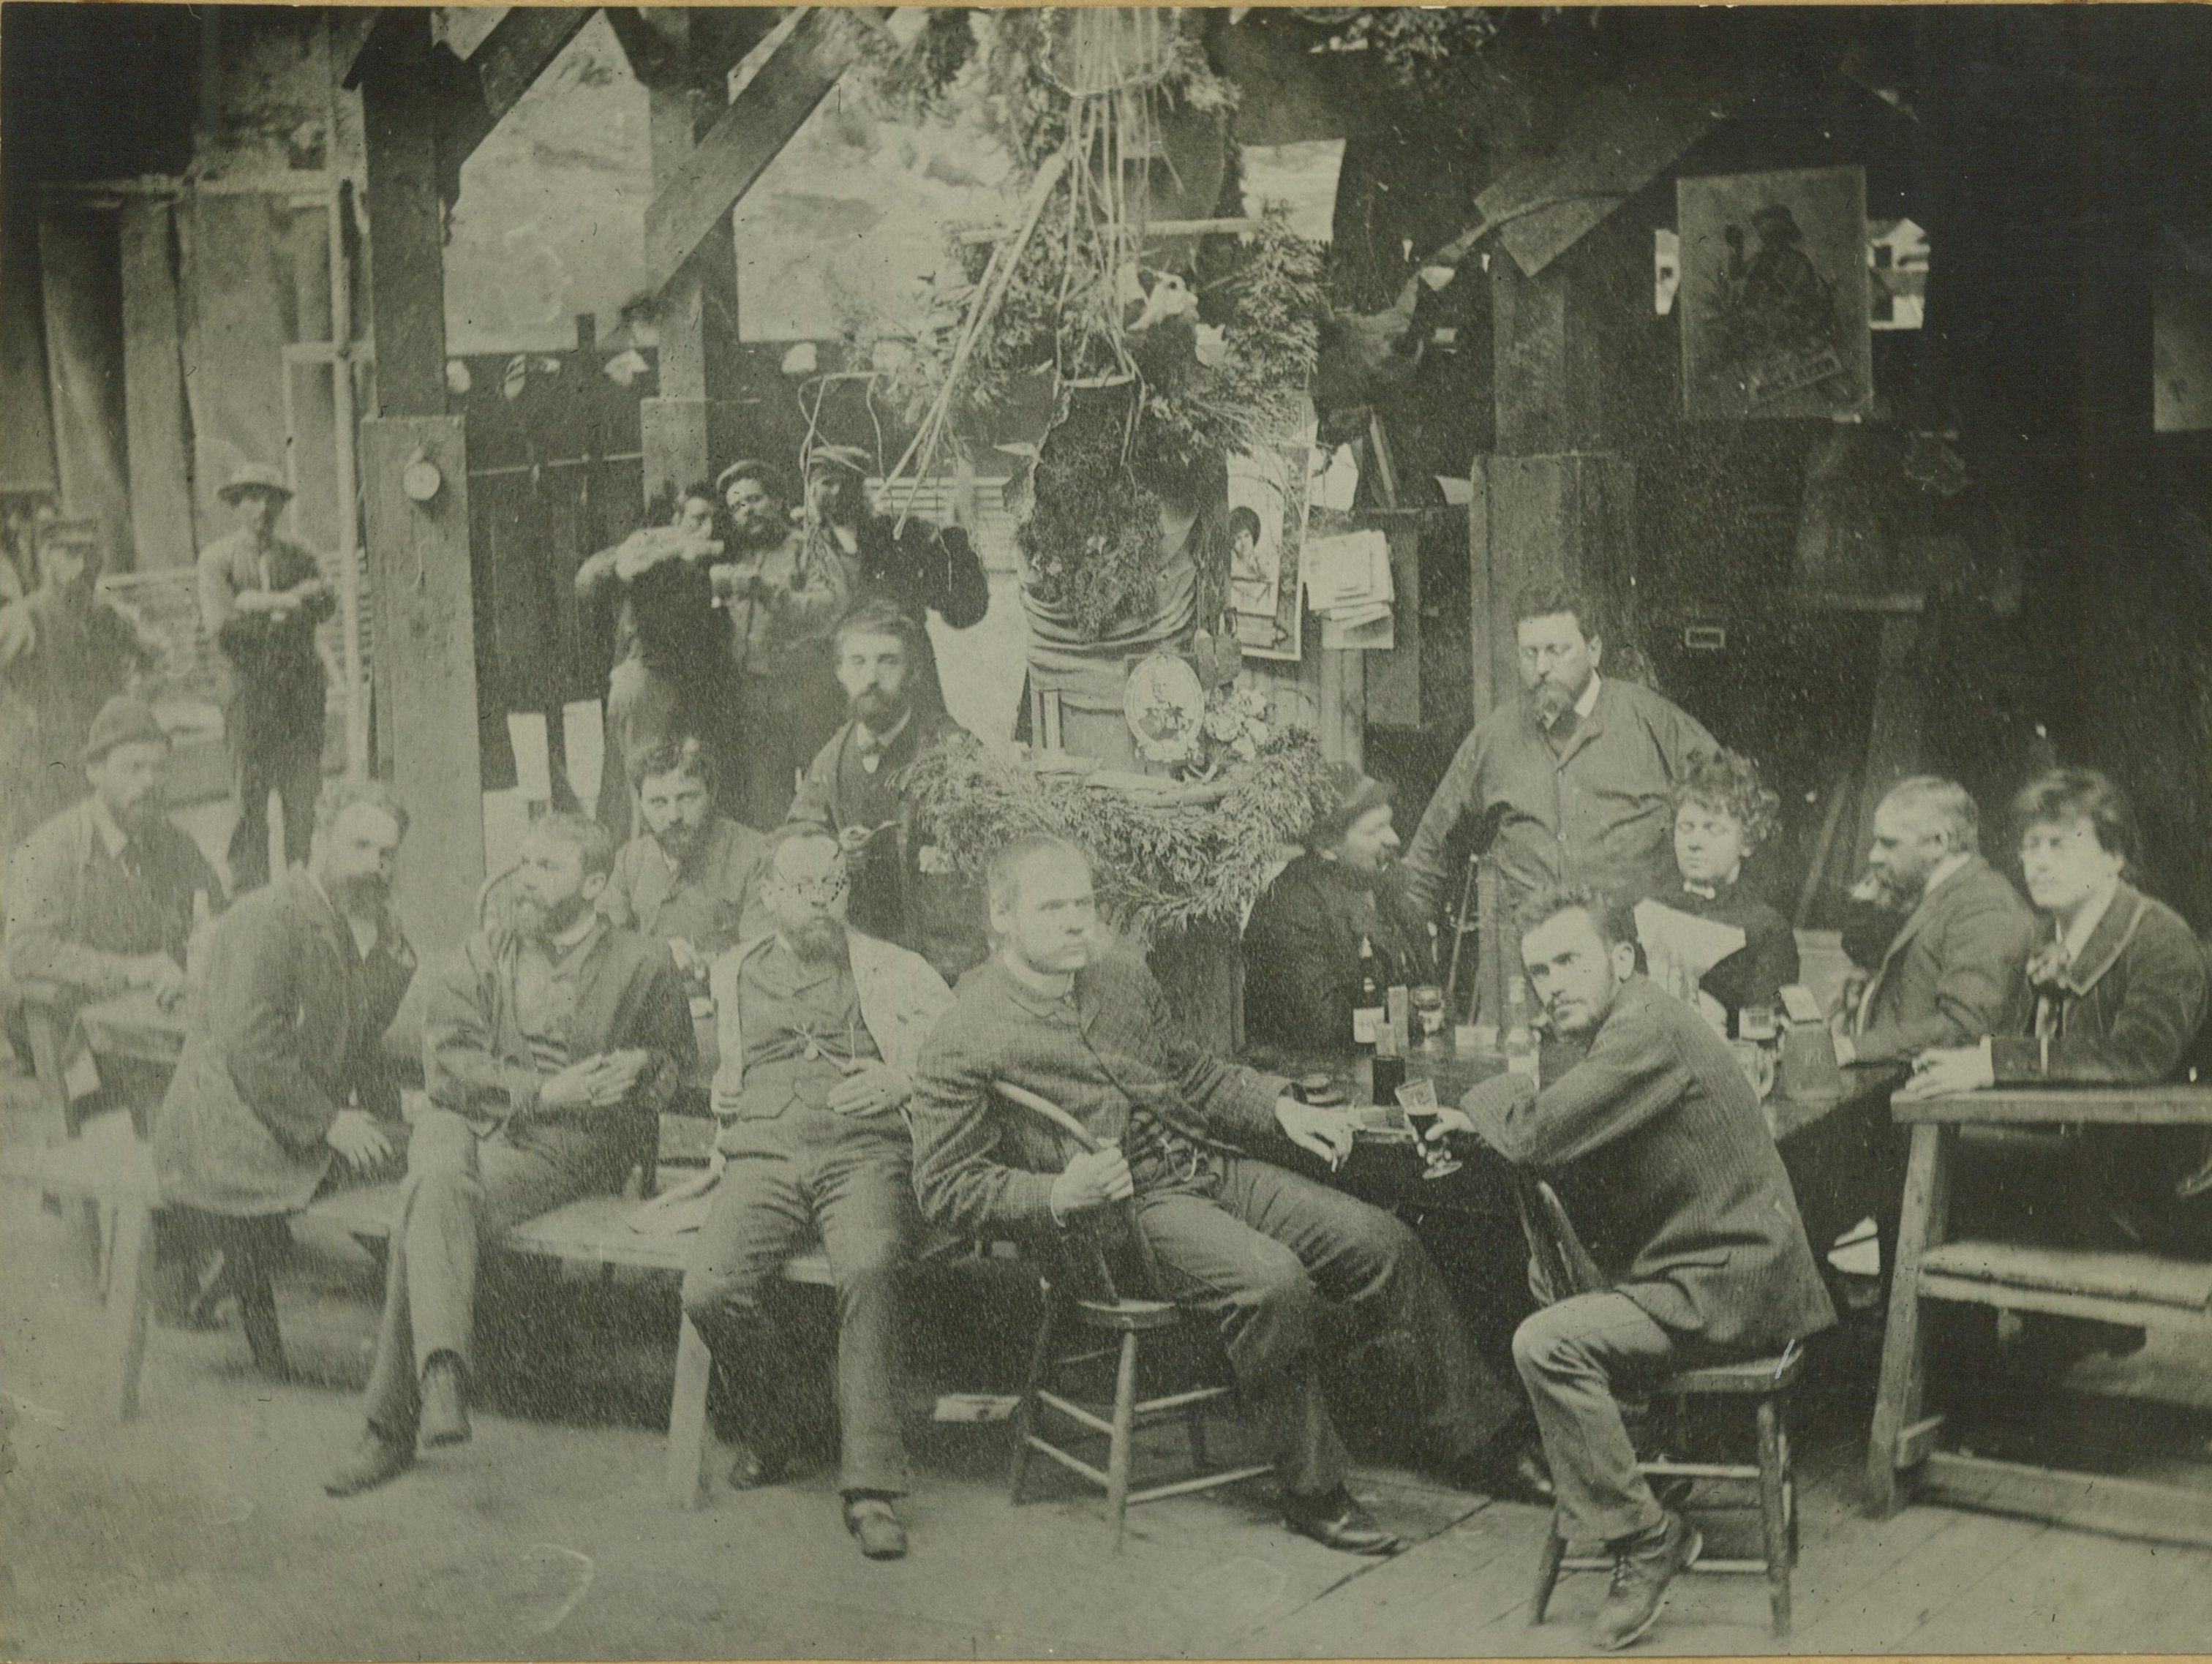 Milwaukee's panoramic painters sit around a table drinking beer in 1885. Richard Lorenz is seated furthest to the left behind the table.